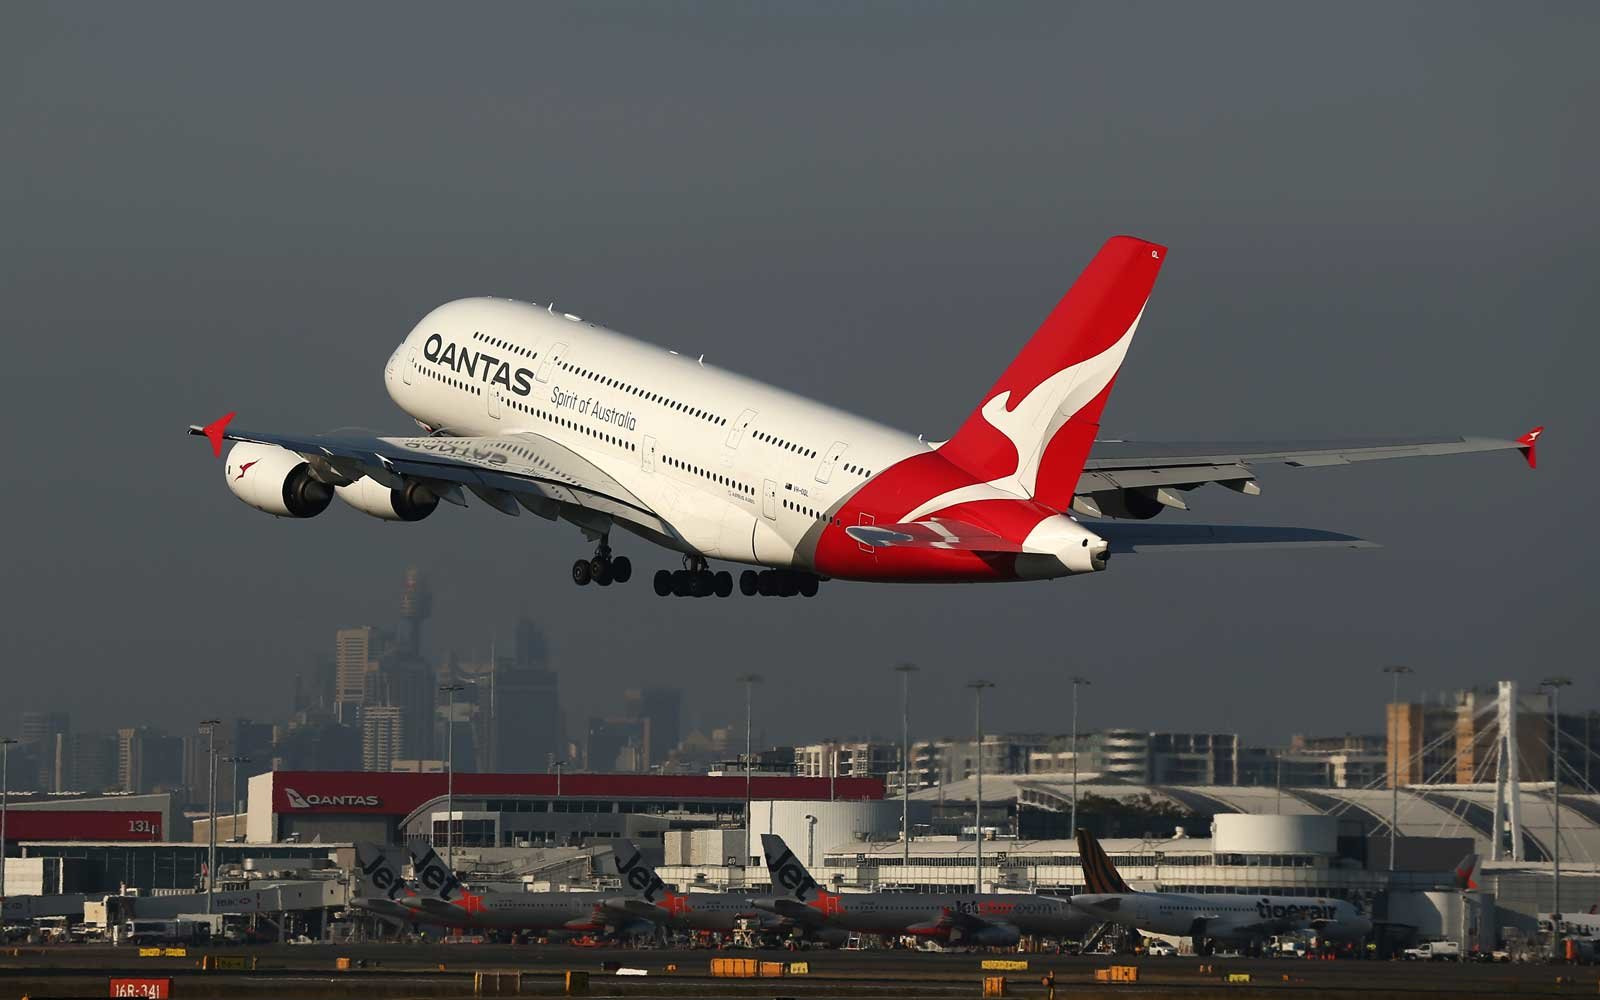 Qantas just tested another 19-hour flight — this time from London to Sydney